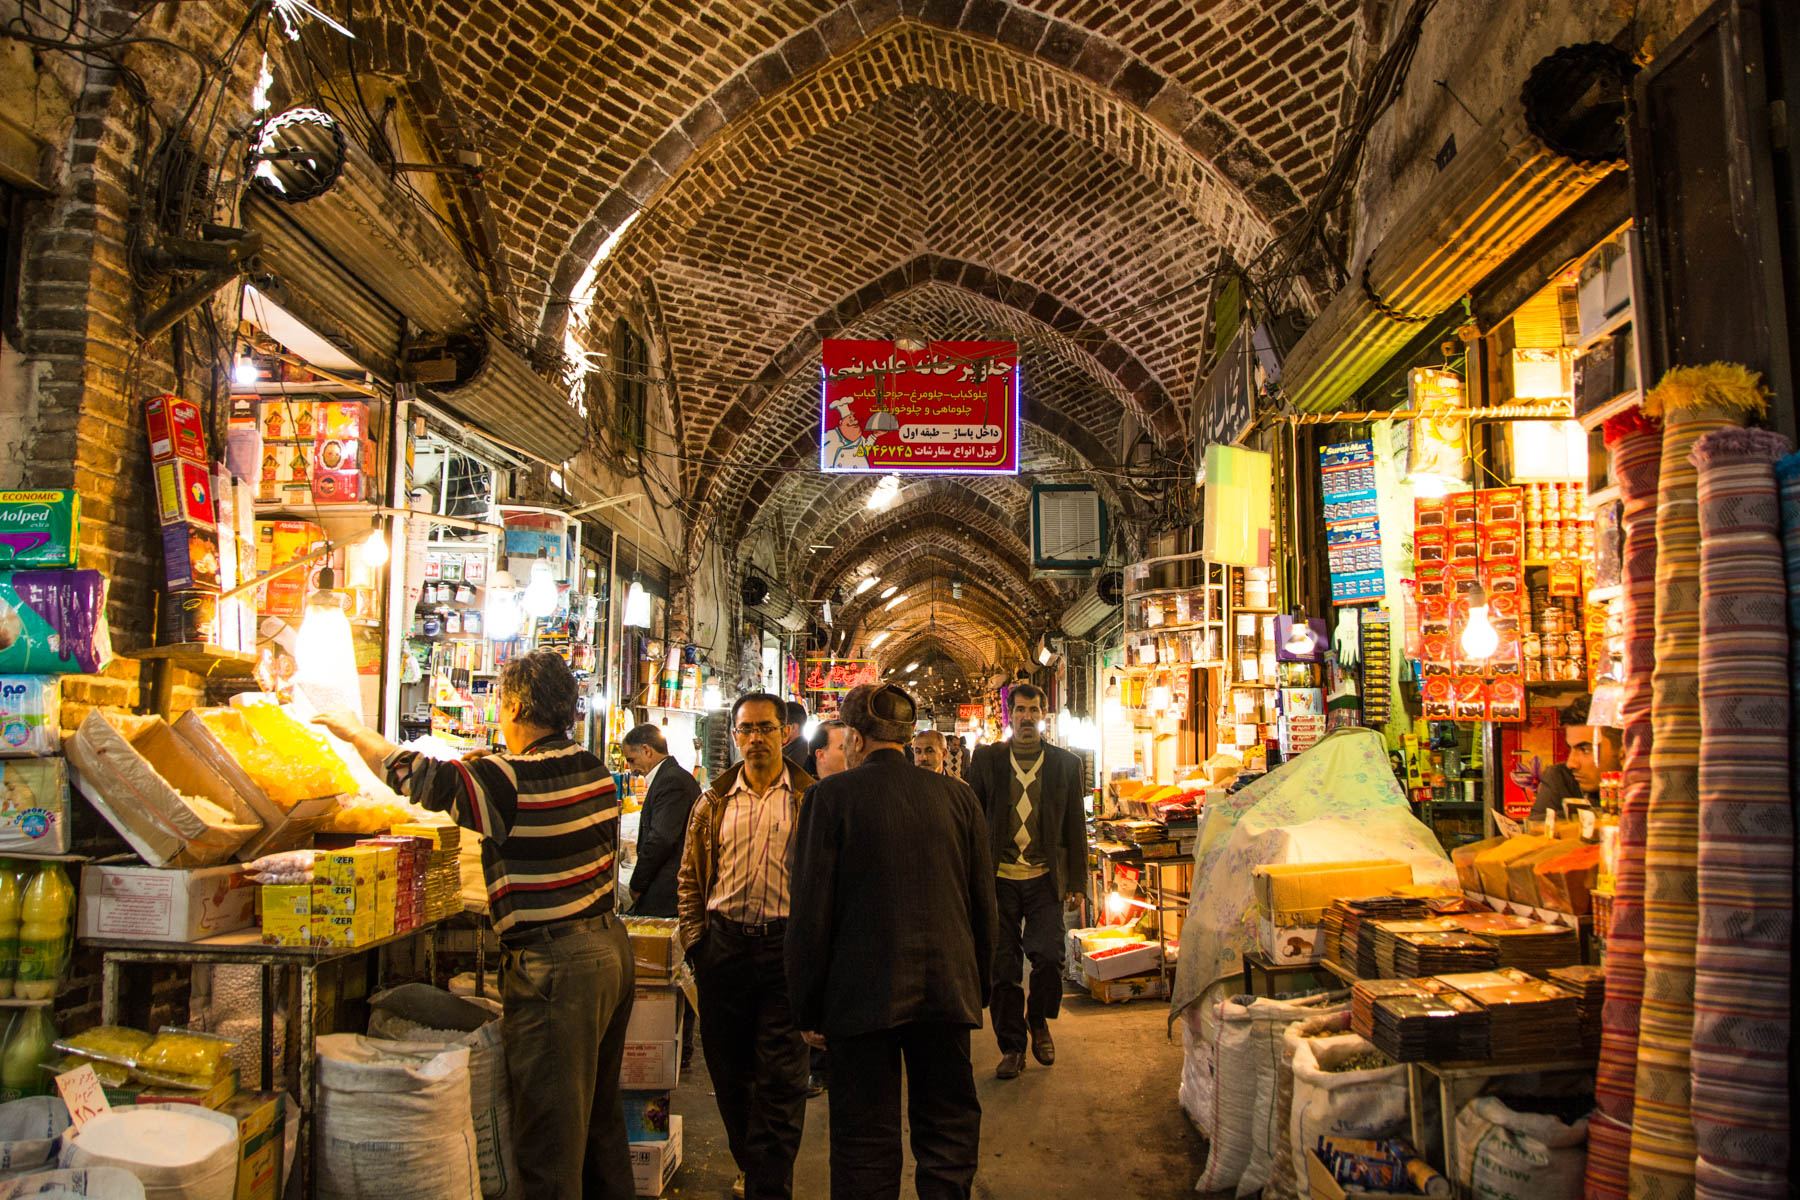 Two week Iran travel itinerary - The UNESCO-listed Grand Bazaar of Tabriz, Iran, the largest covered bazaar in the world - Lost With Purpose